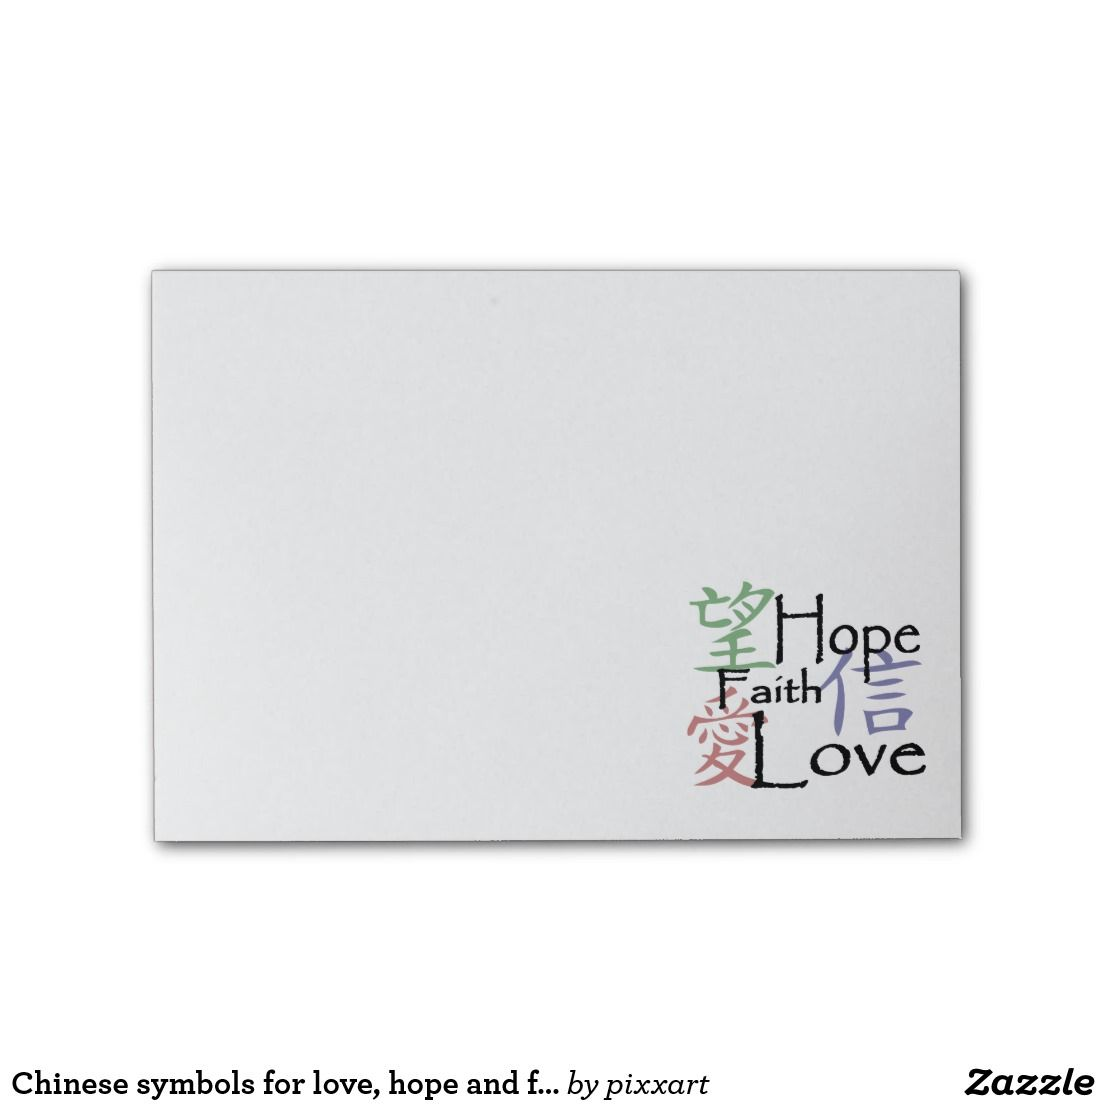 Chinese symbols for love hope and faith post it notes post it chinese symbols for love hope and faith post it notes biocorpaavc